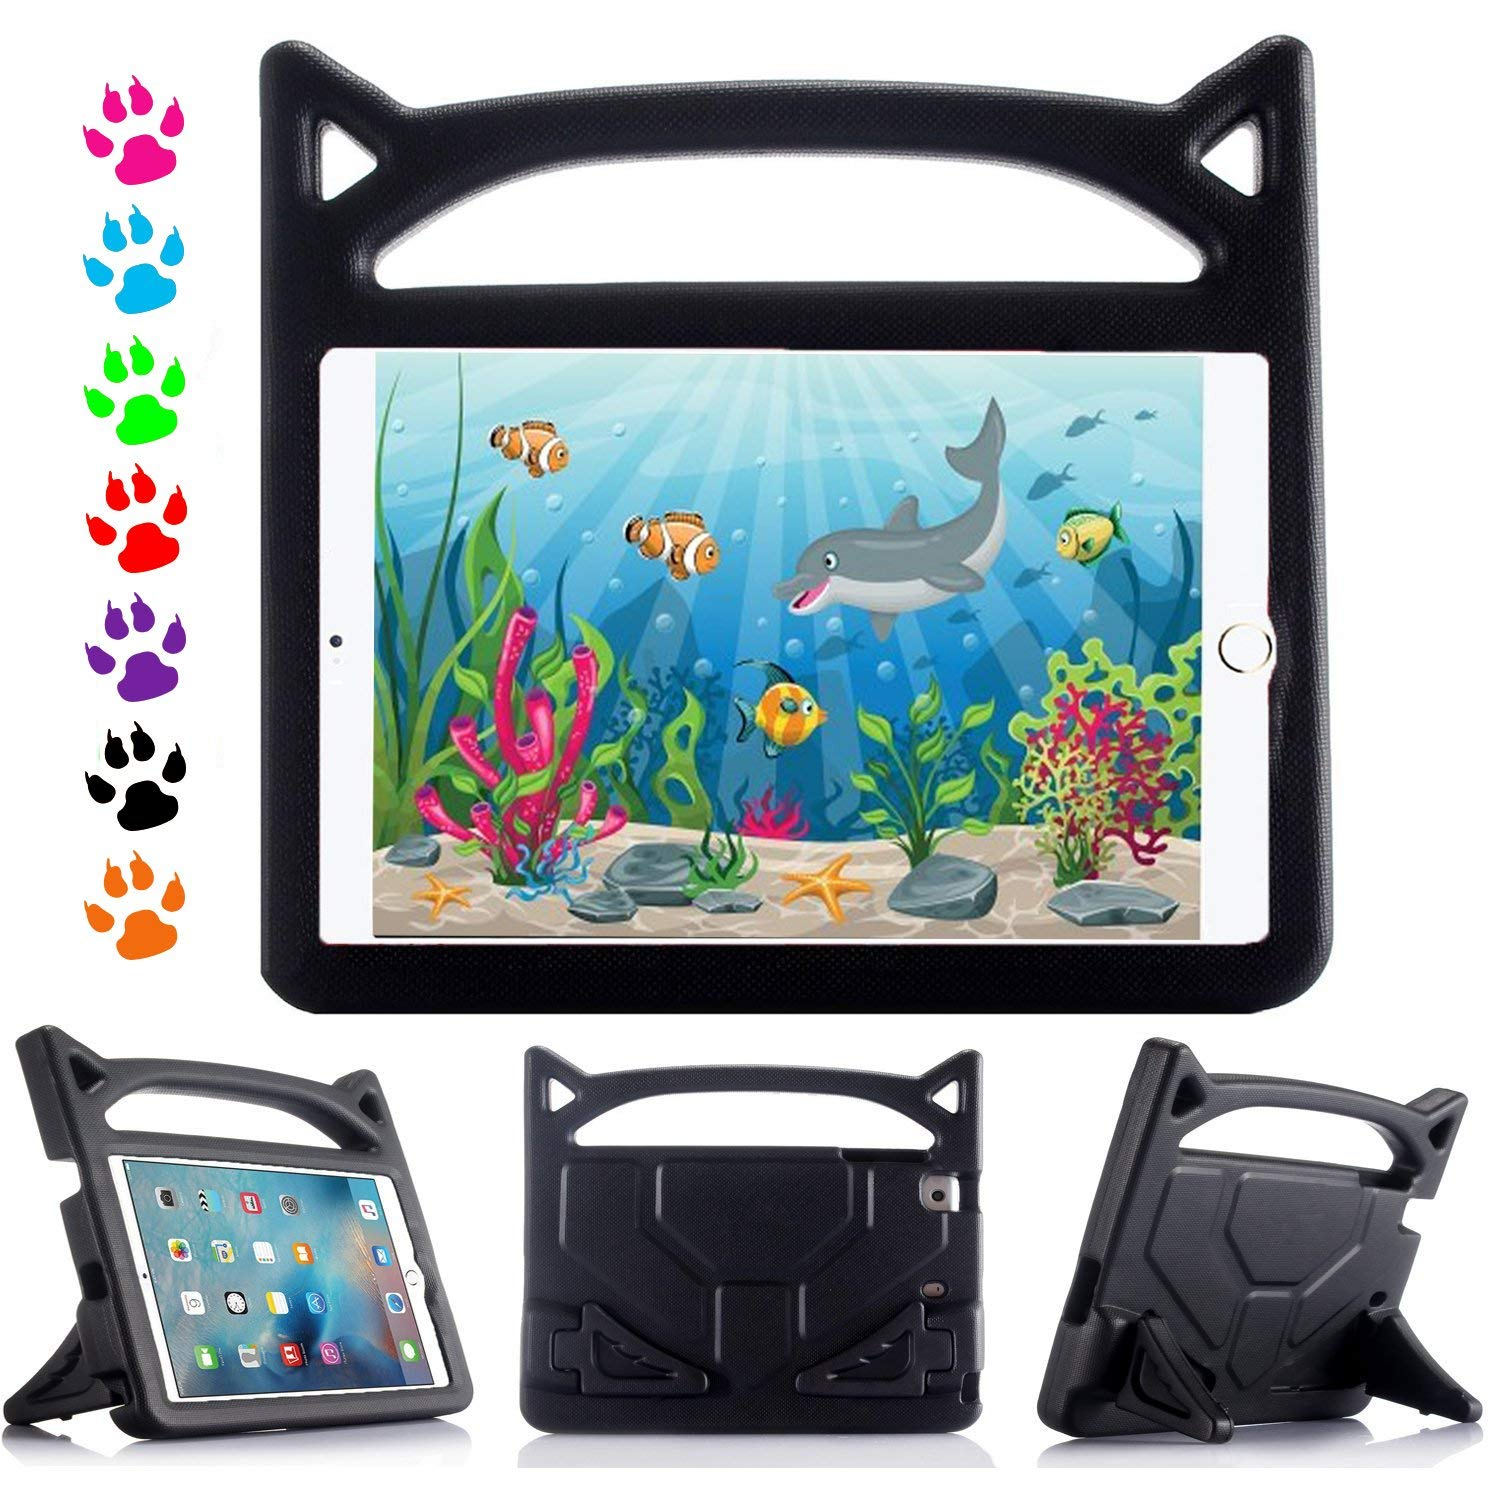 iPad Mini 4 3 2 1 Kids Case - Allytech Light Weight EVA Kids Shock Proof Handle Friendly Convertible Stand Protective Kids Protector Cover Case for Apple iPad Mini 4 3 2 1 Tablet 7.9 inch - Black